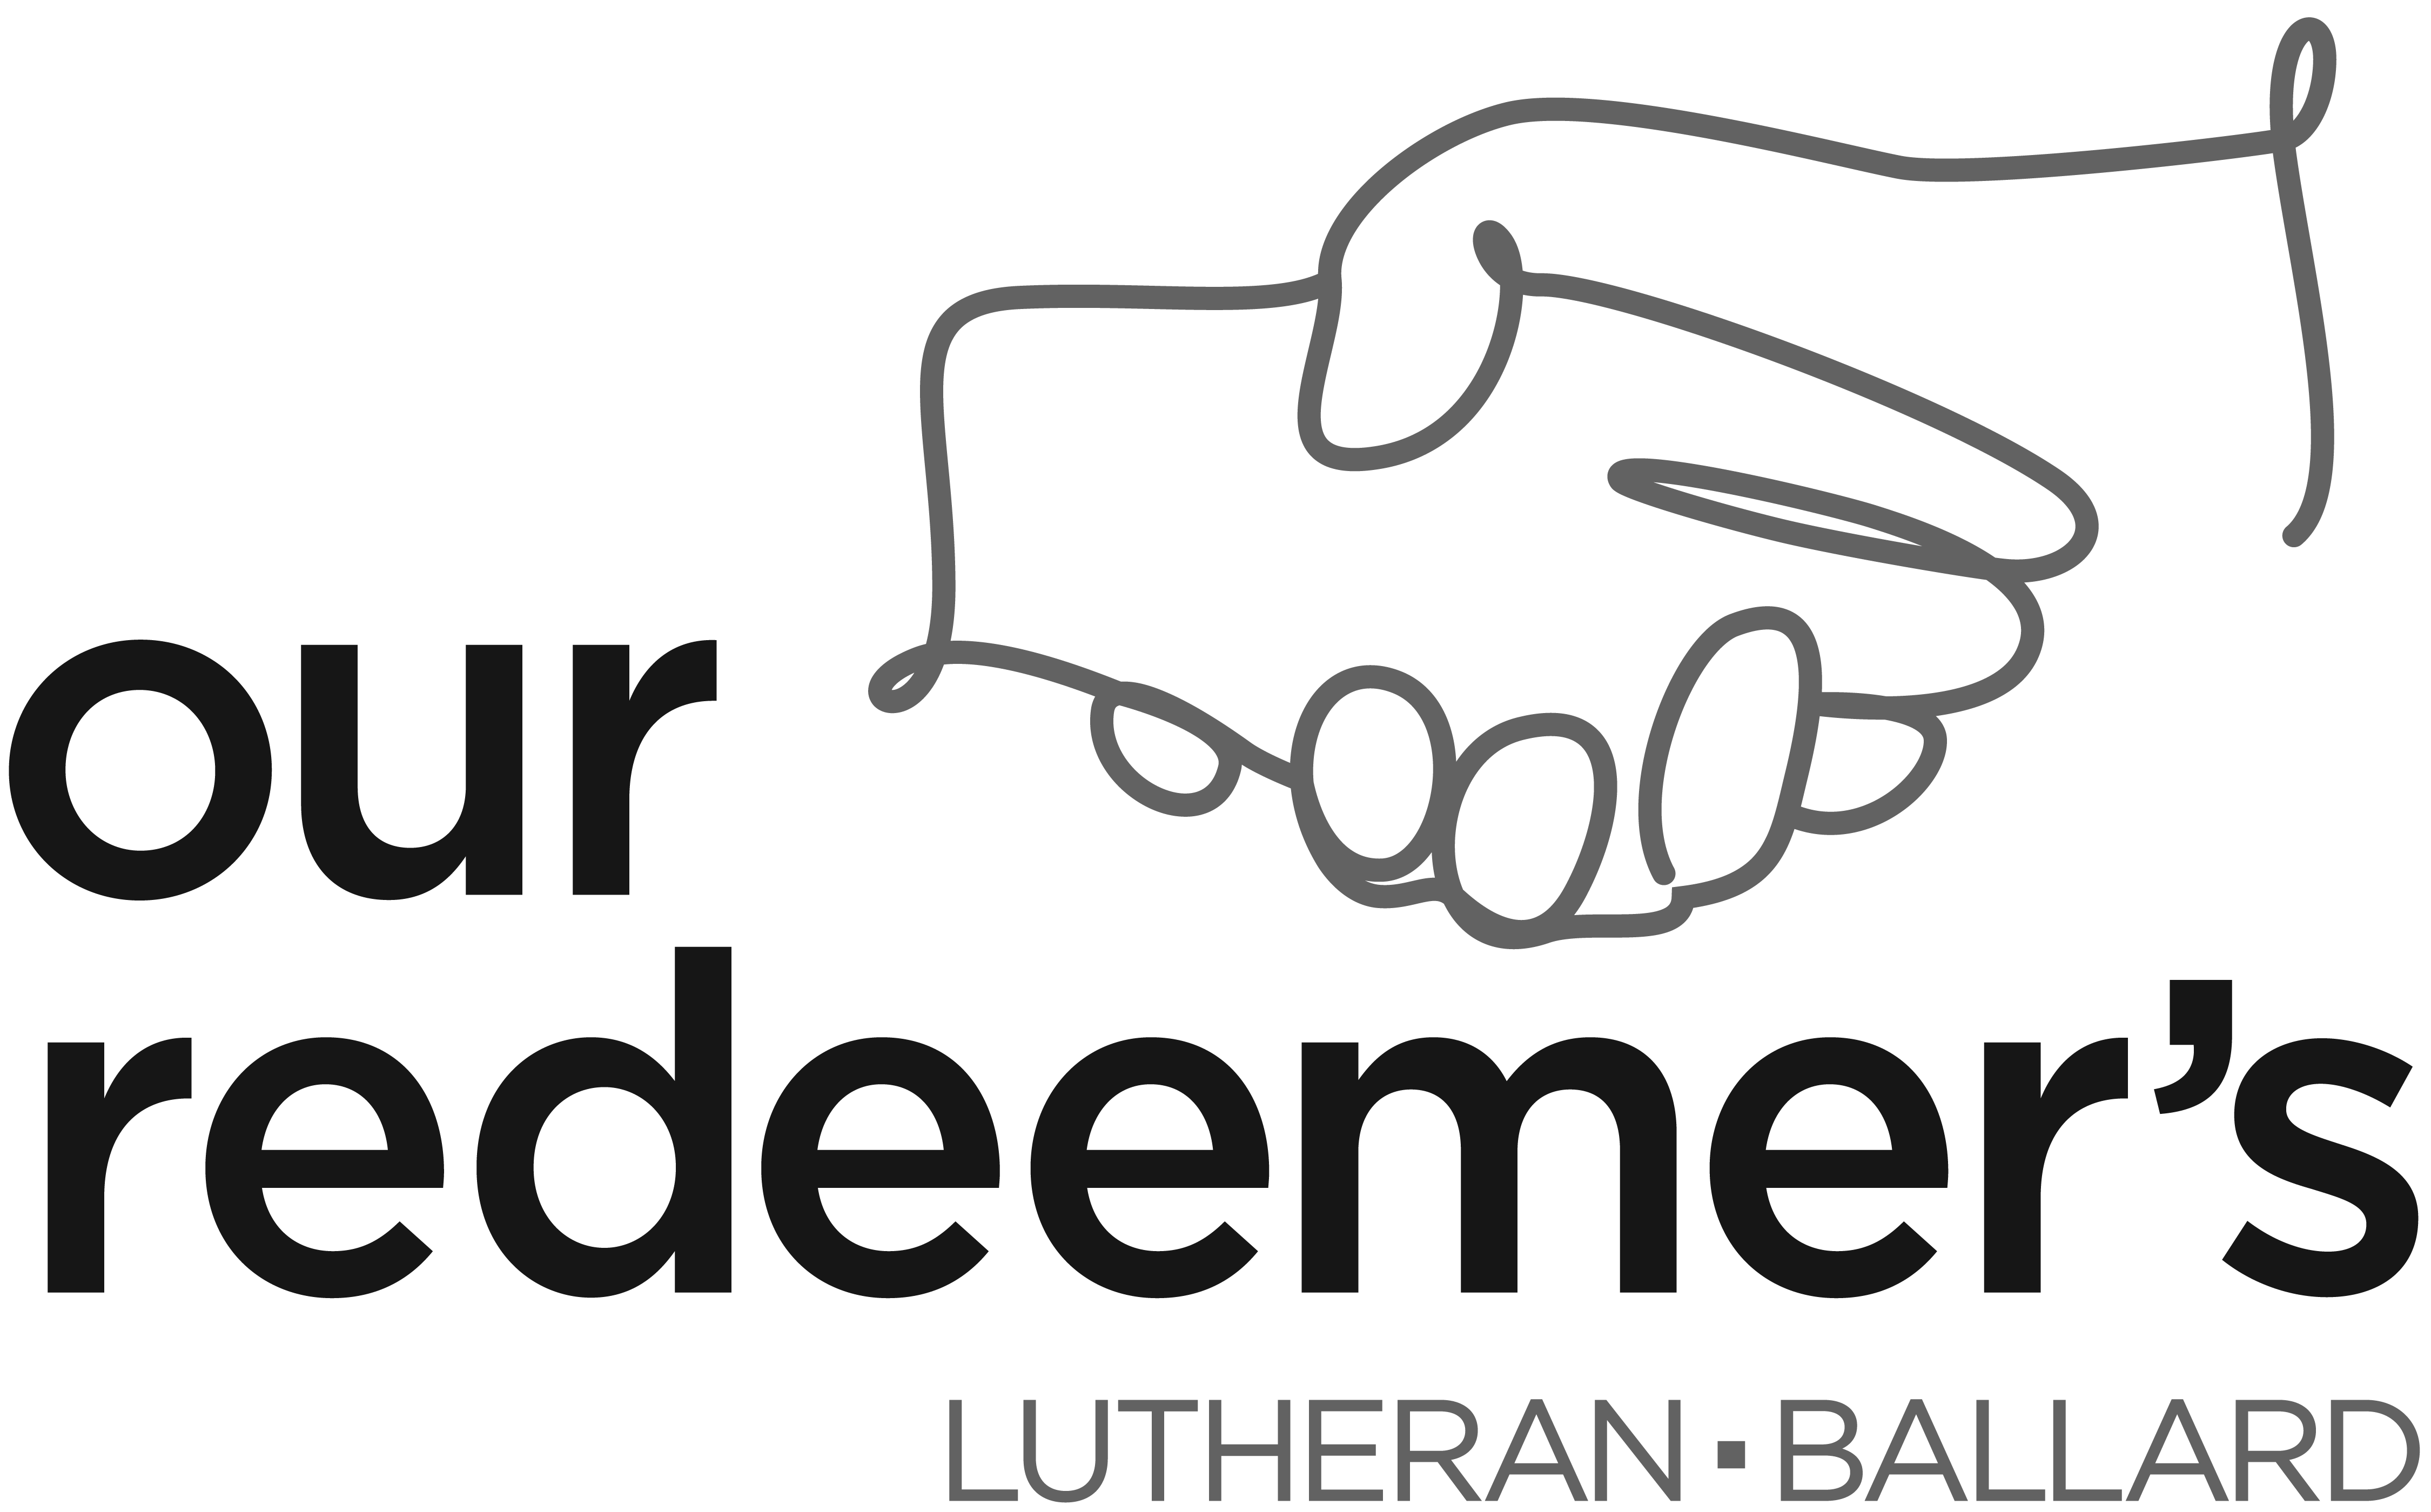 Our Redeemer's Lutheran Church